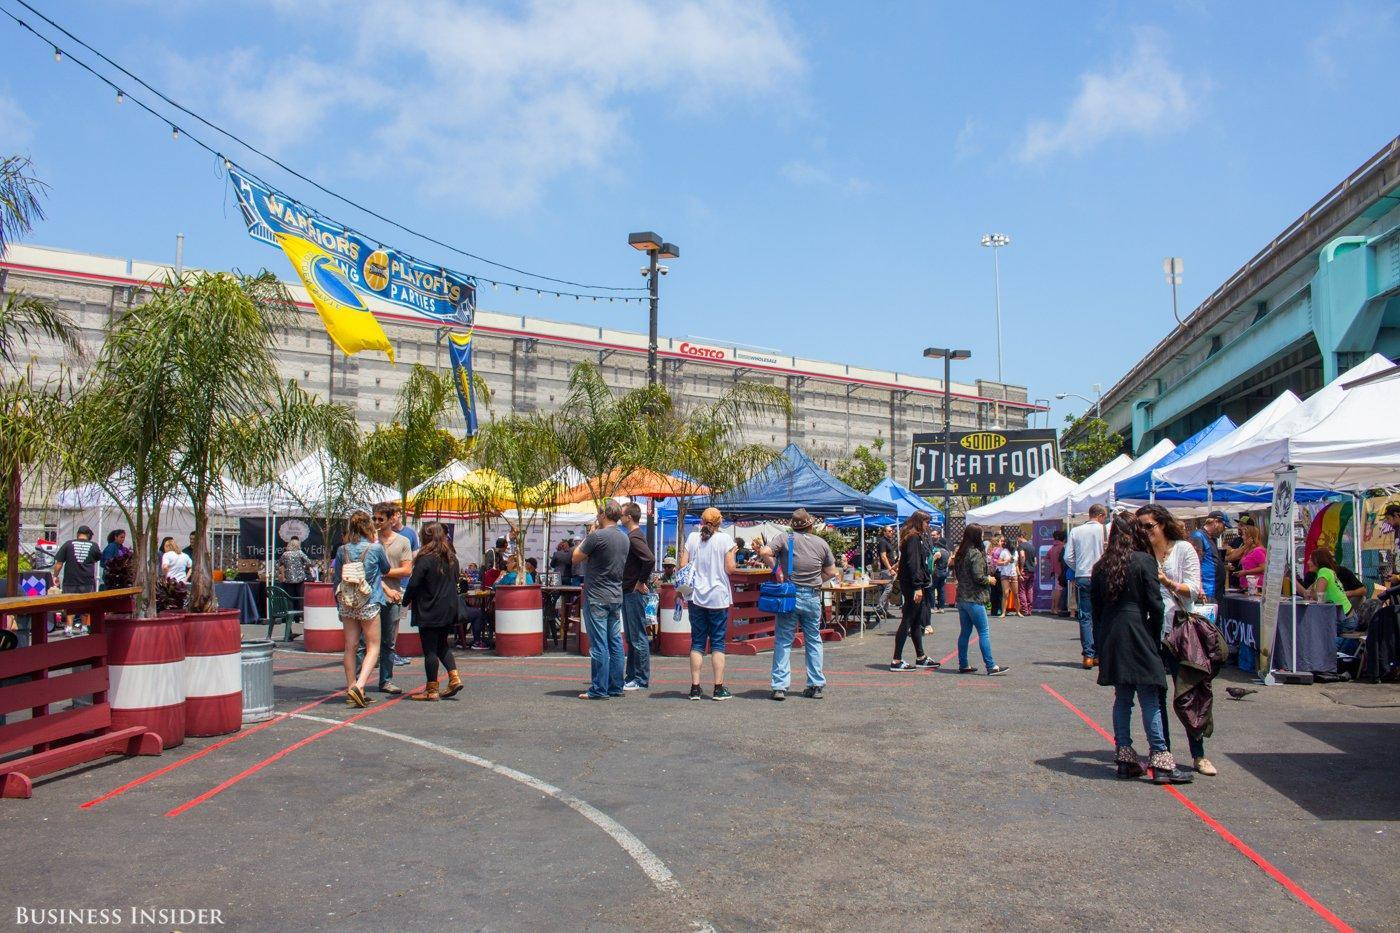 Scene at the Bay Area Get Baked Sale - Melia Robinson/Business Insider